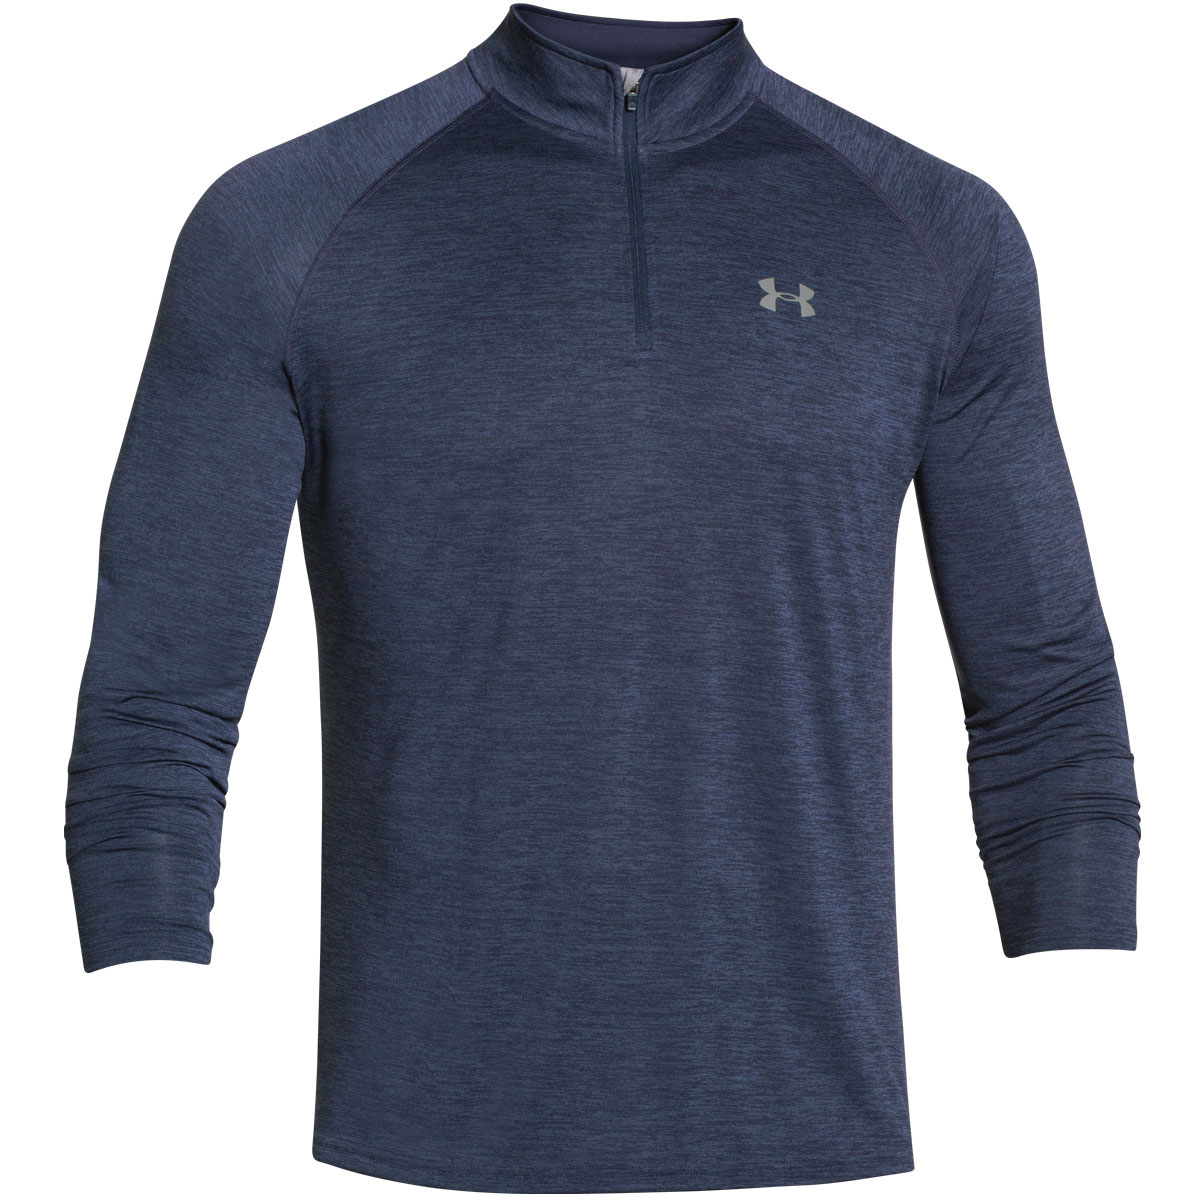 Under-Armour-Mens-UA-Tech-1-4-Zip-Long-Sleeve-Top-Workout-Layer-27-OFF-RRP thumbnail 58